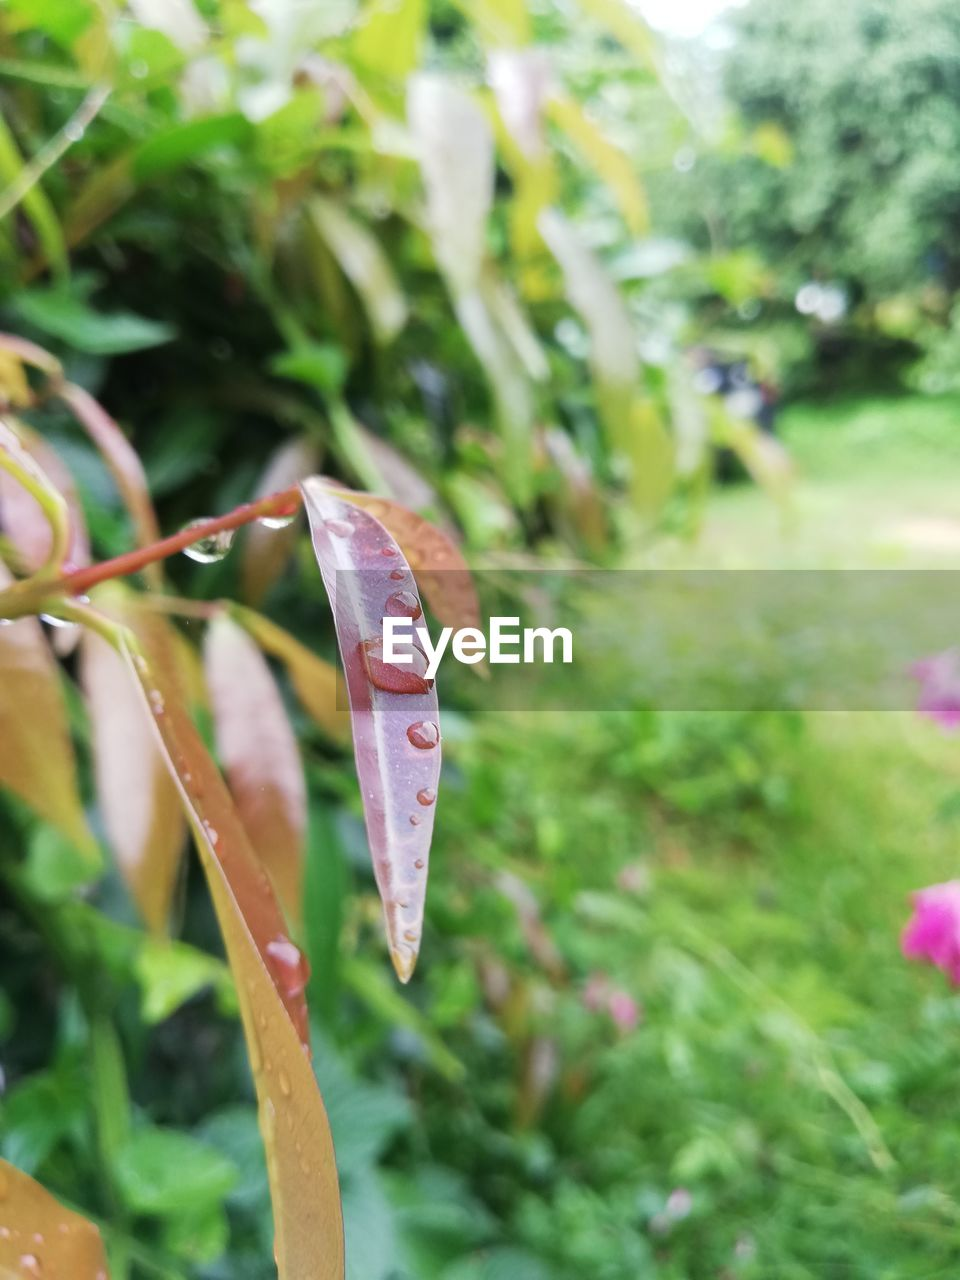 plant, growth, close-up, day, beauty in nature, focus on foreground, nature, no people, green color, grass, flower, pink color, fragility, vulnerability, outdoors, selective focus, leaf, plant part, freshness, field, blade of grass